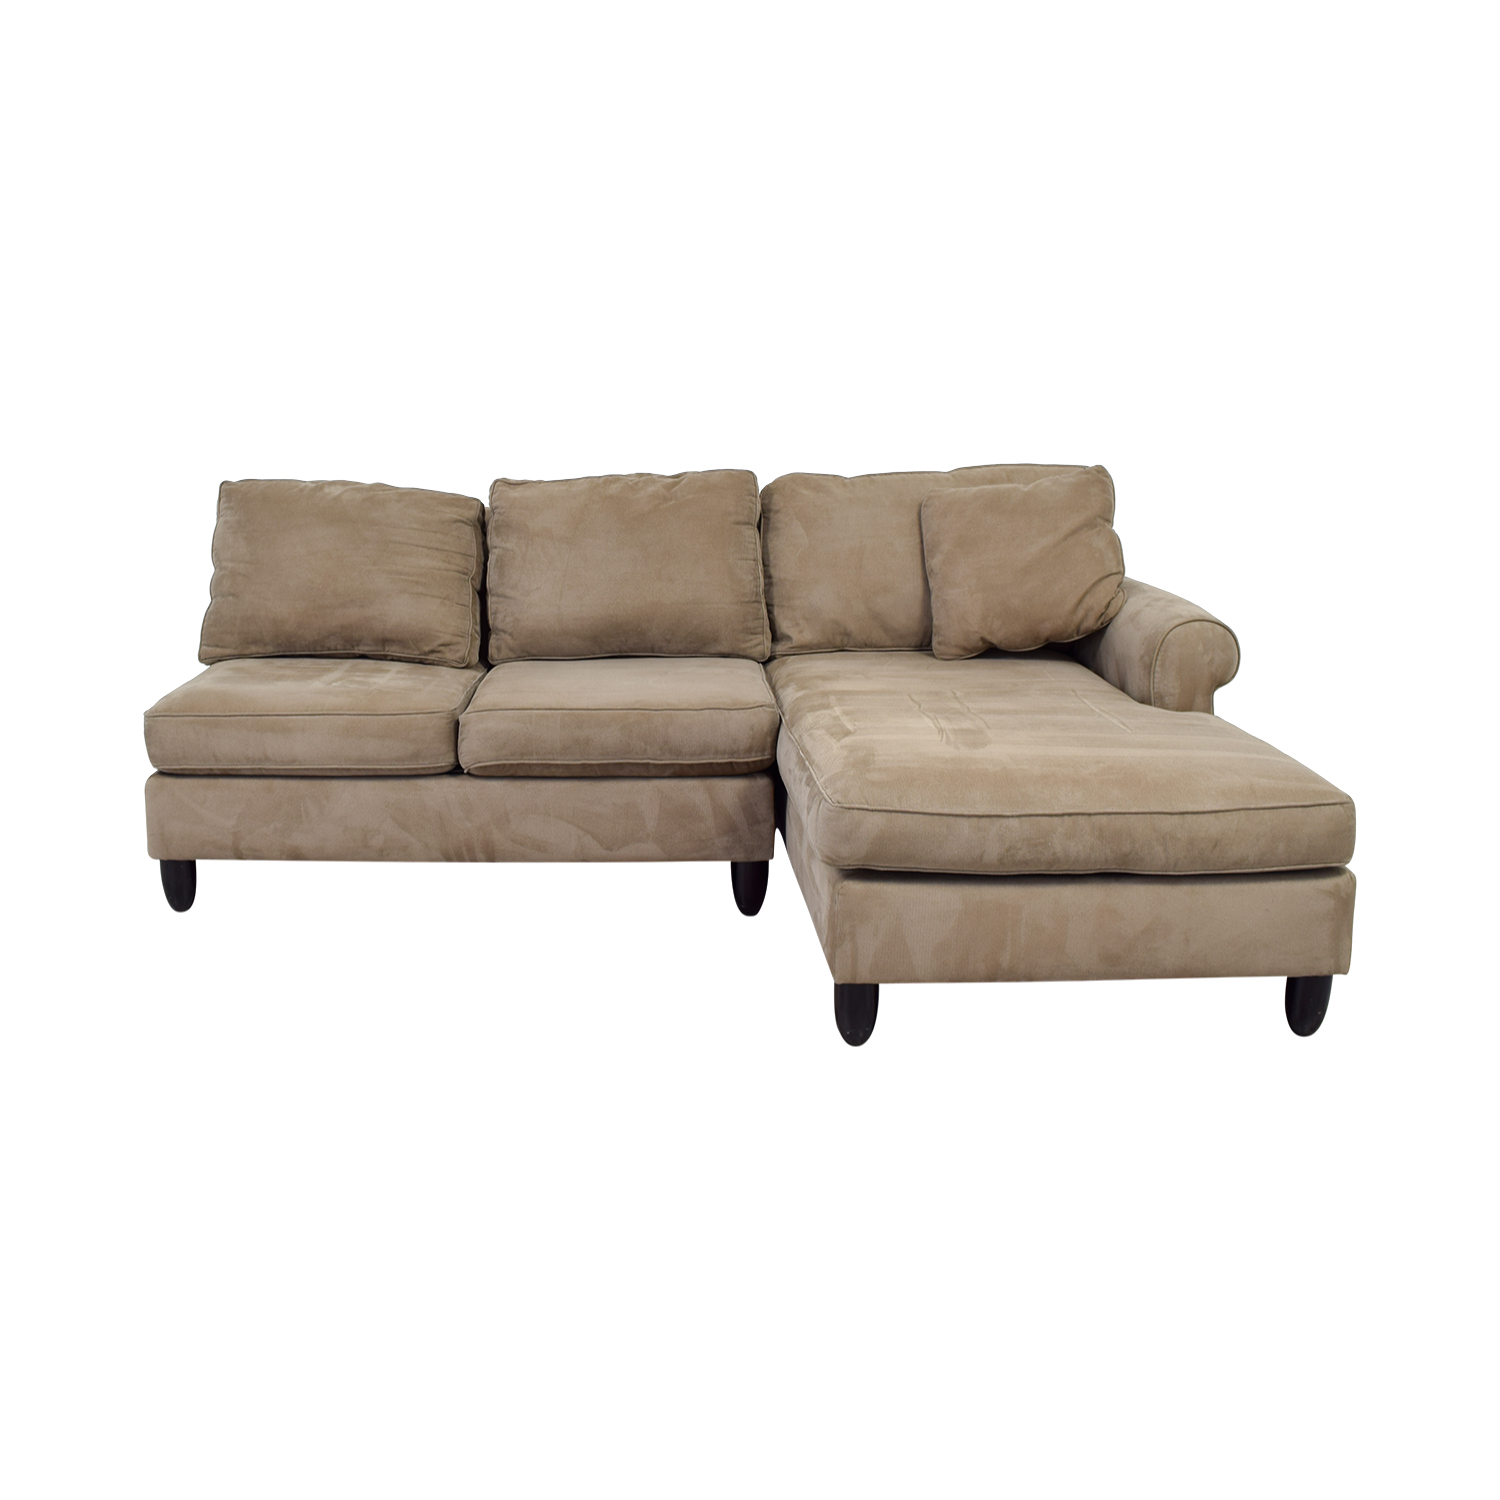 Buy Havertyu0027s Tan Chaise Sectional Havertyu0027s ...